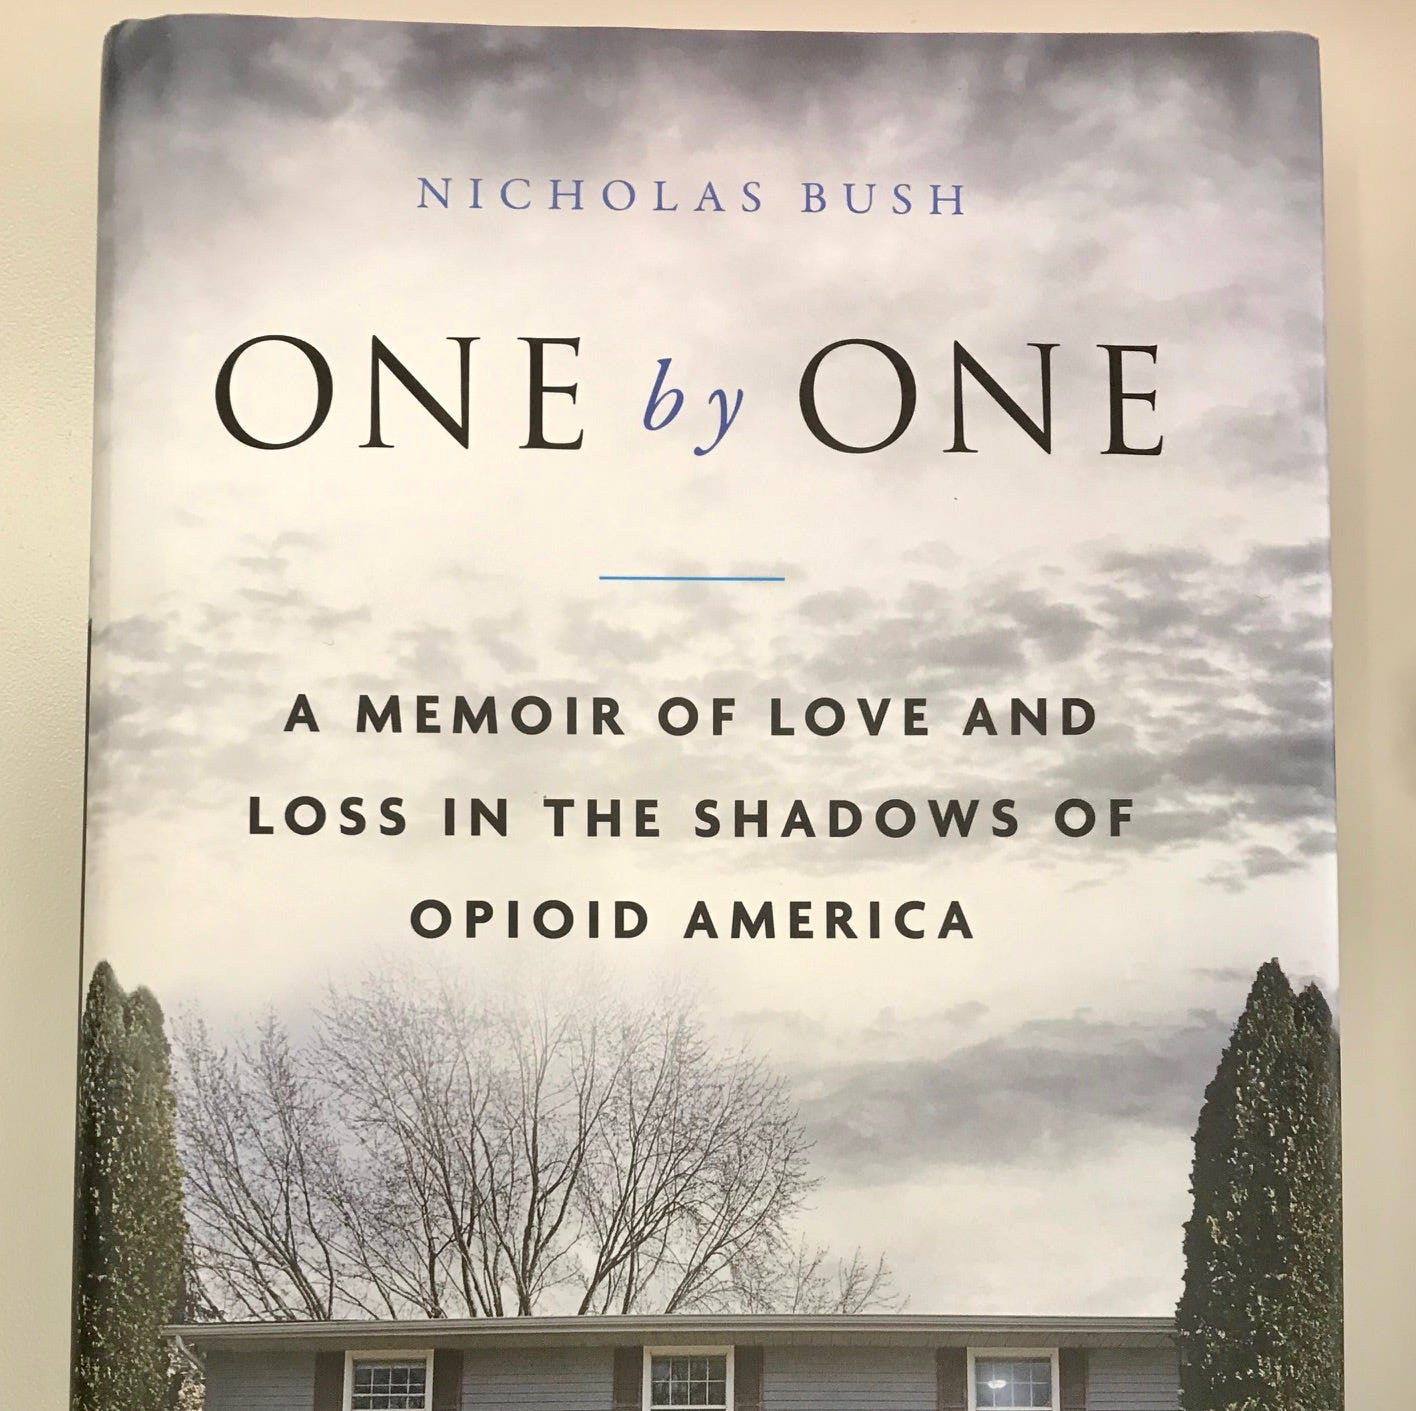 Green Bay native Nicholas Bush opens up about opioid addiction in his new memoir